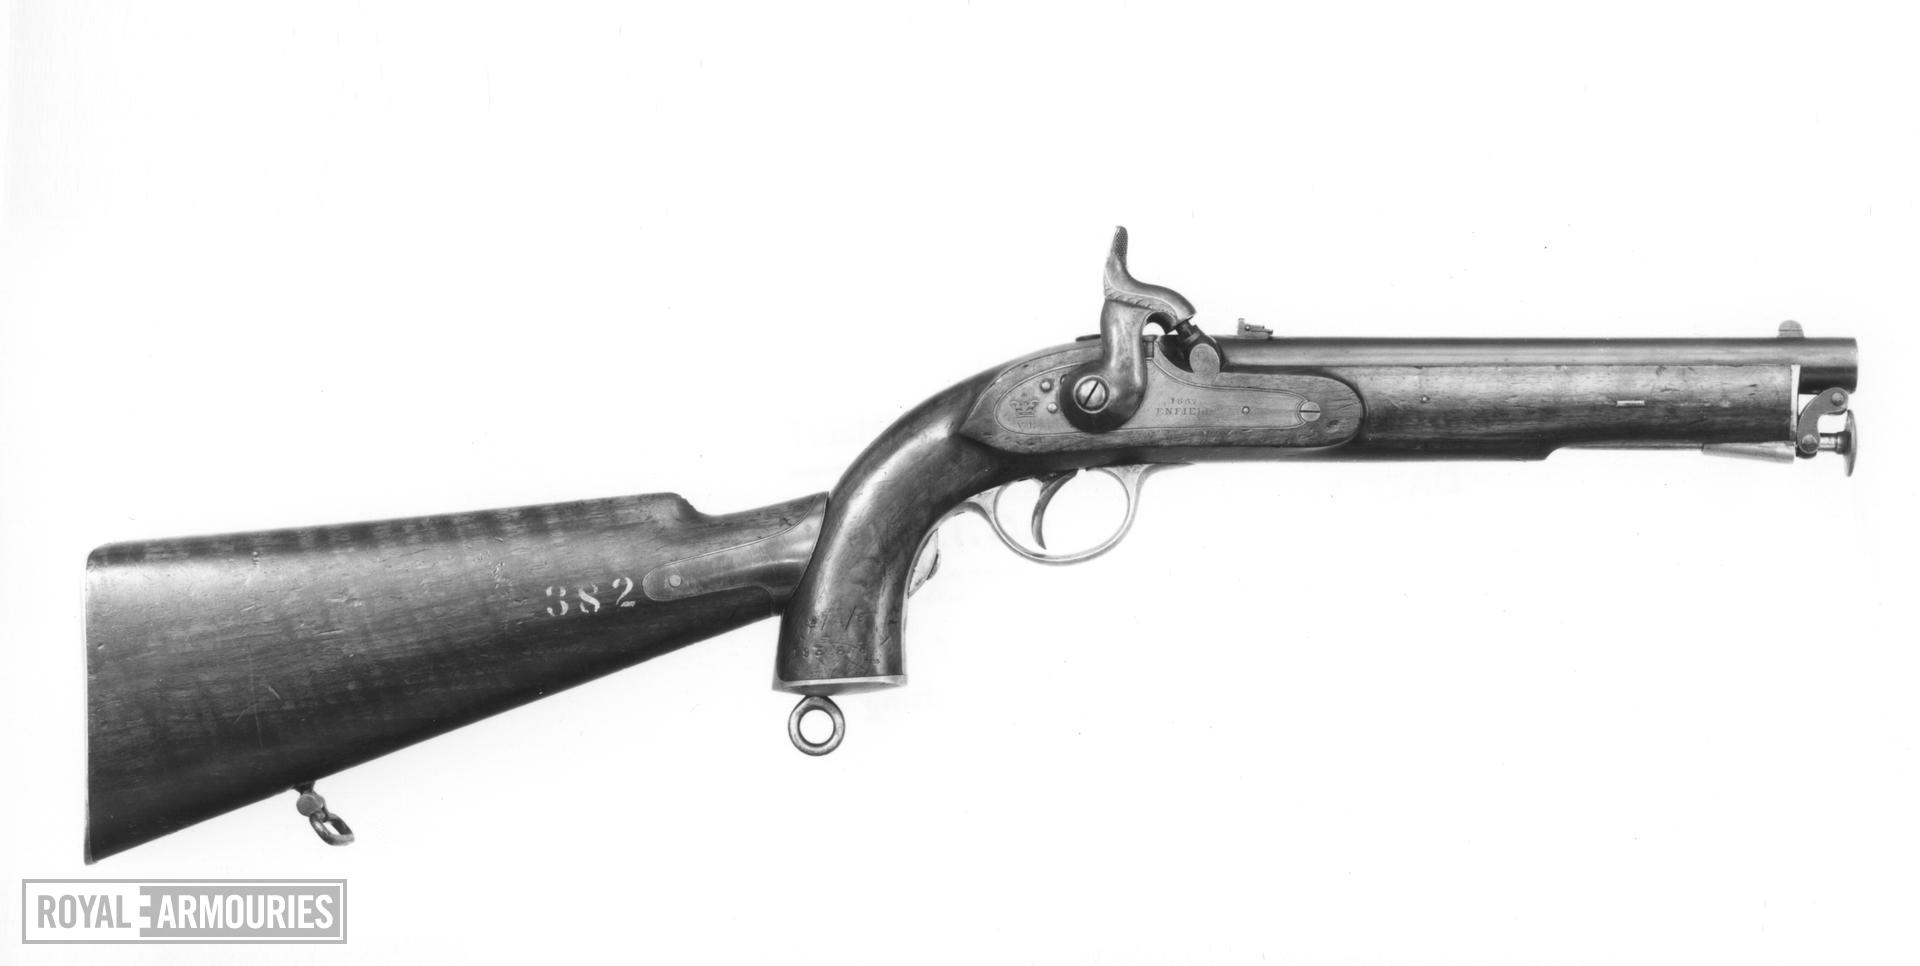 Percussion pistol - Enfield Pattern 1856